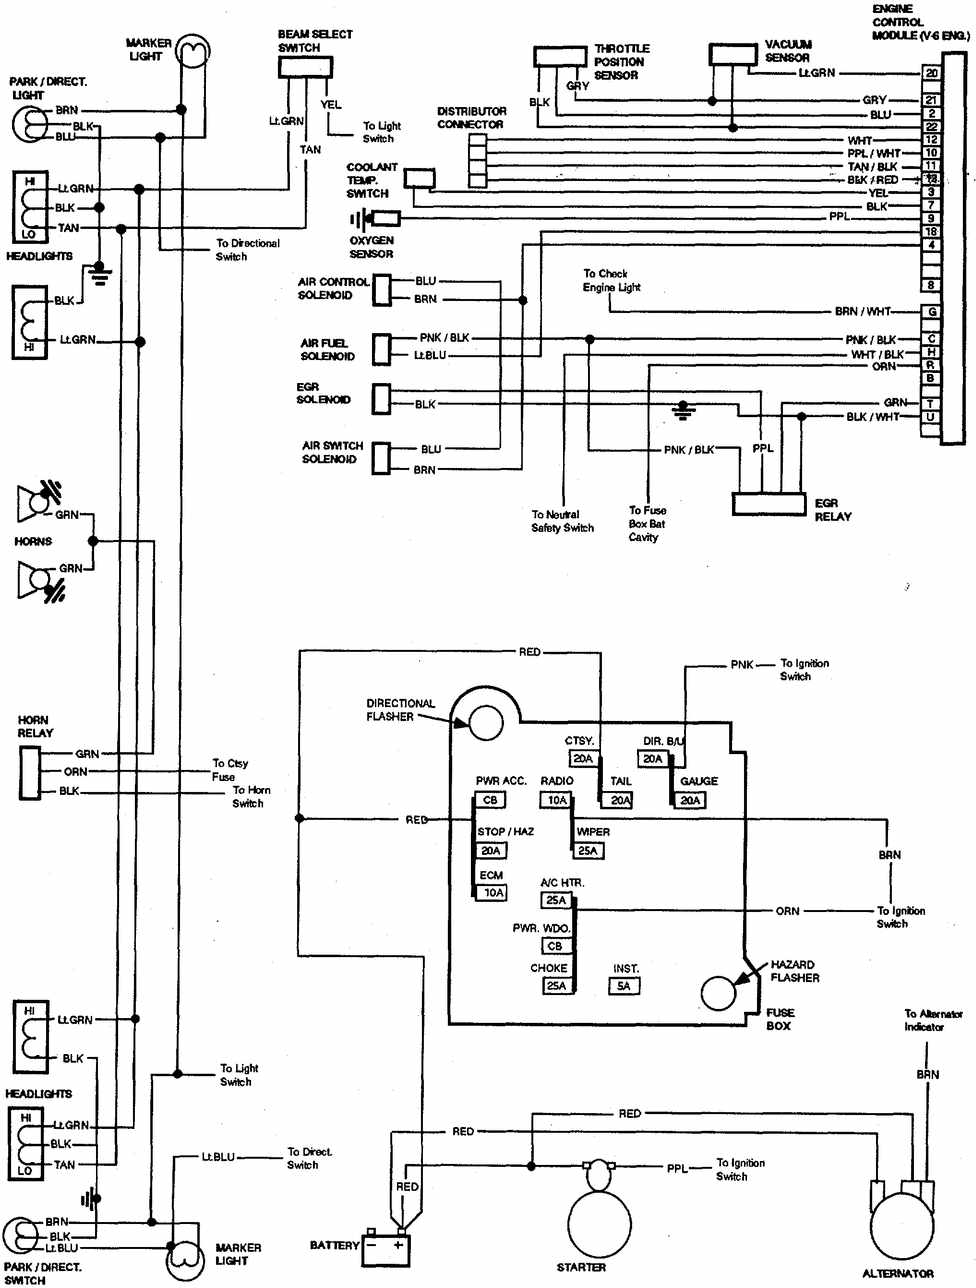 1992 Buick Regal Power Window Wiring Diagram Great Design Of 2000 Lesabre Ignition Switch Chevrolet V8 Trucks 1981 1987 Electrical 1993 Engine 2003